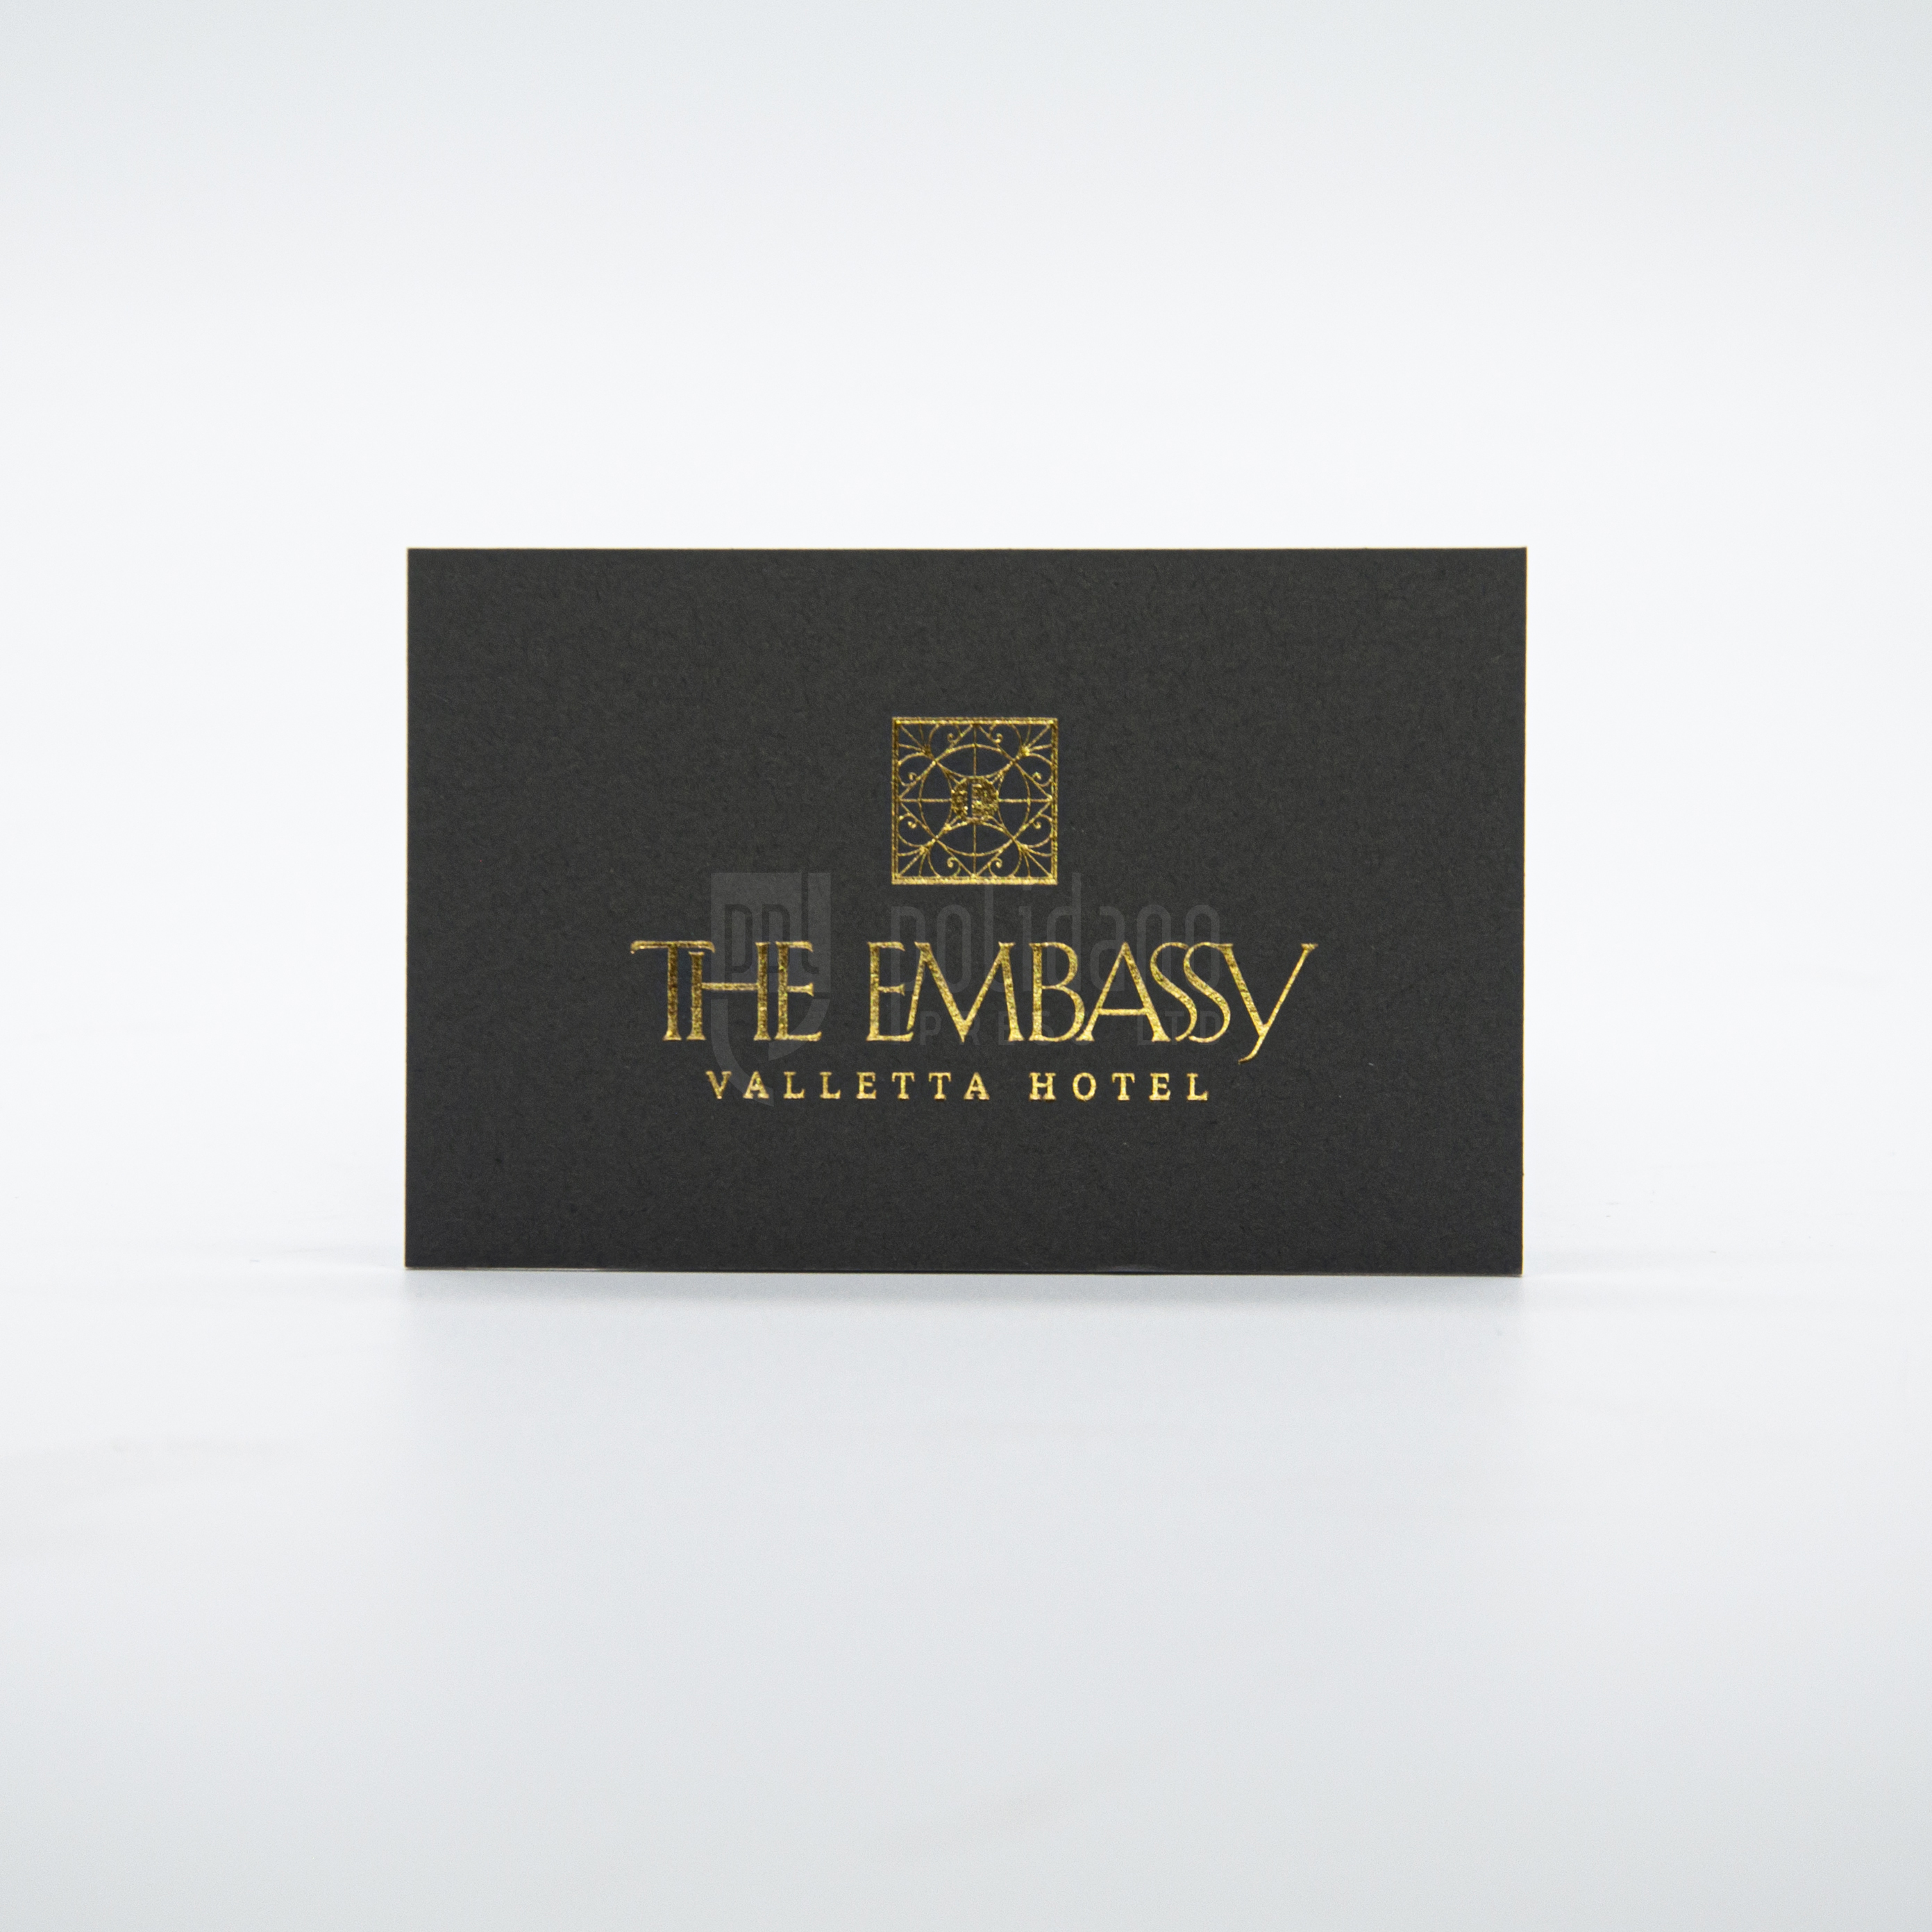 The Embassy